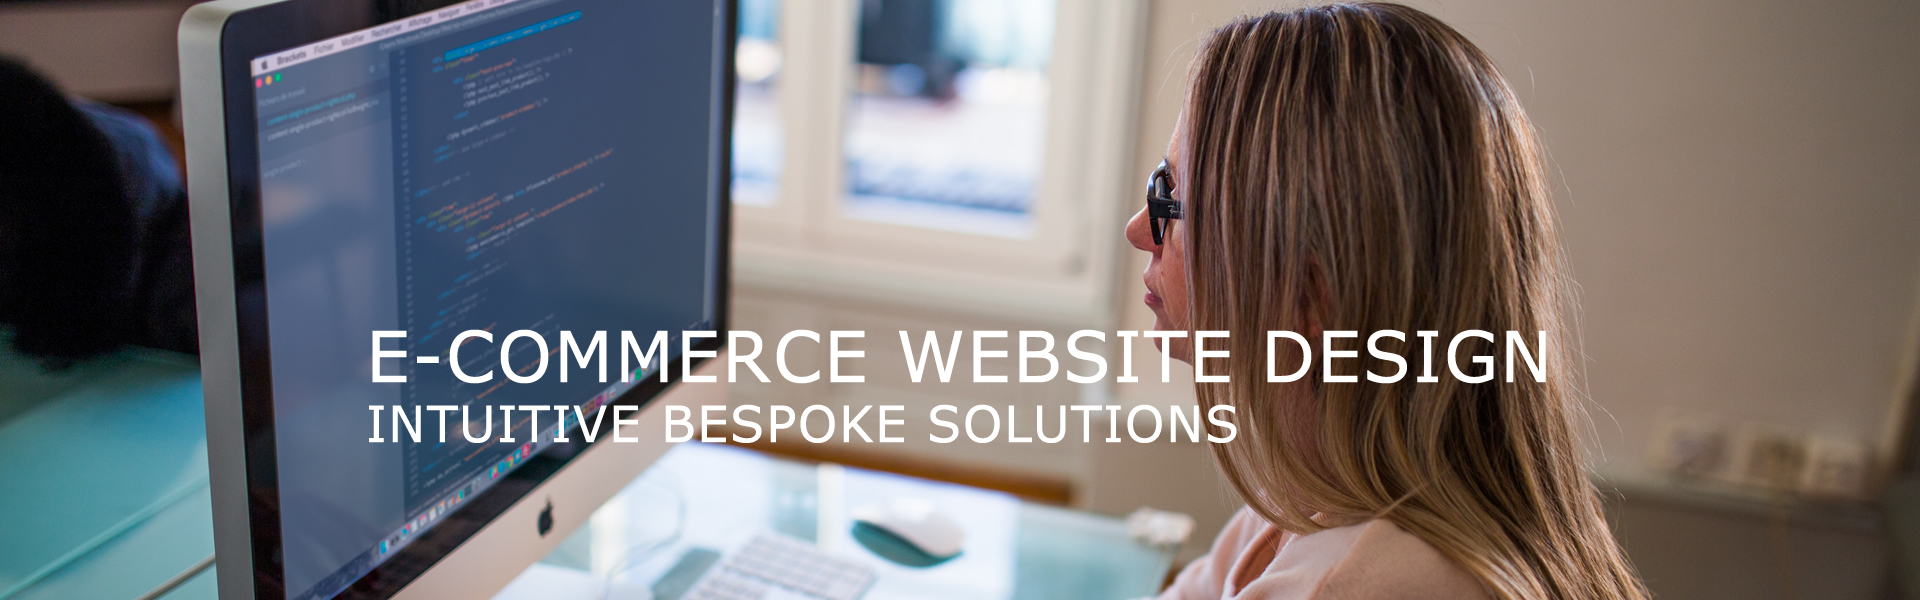 E-Commerce Website Design & Solutions, bespoke, Magemto, Prestashop